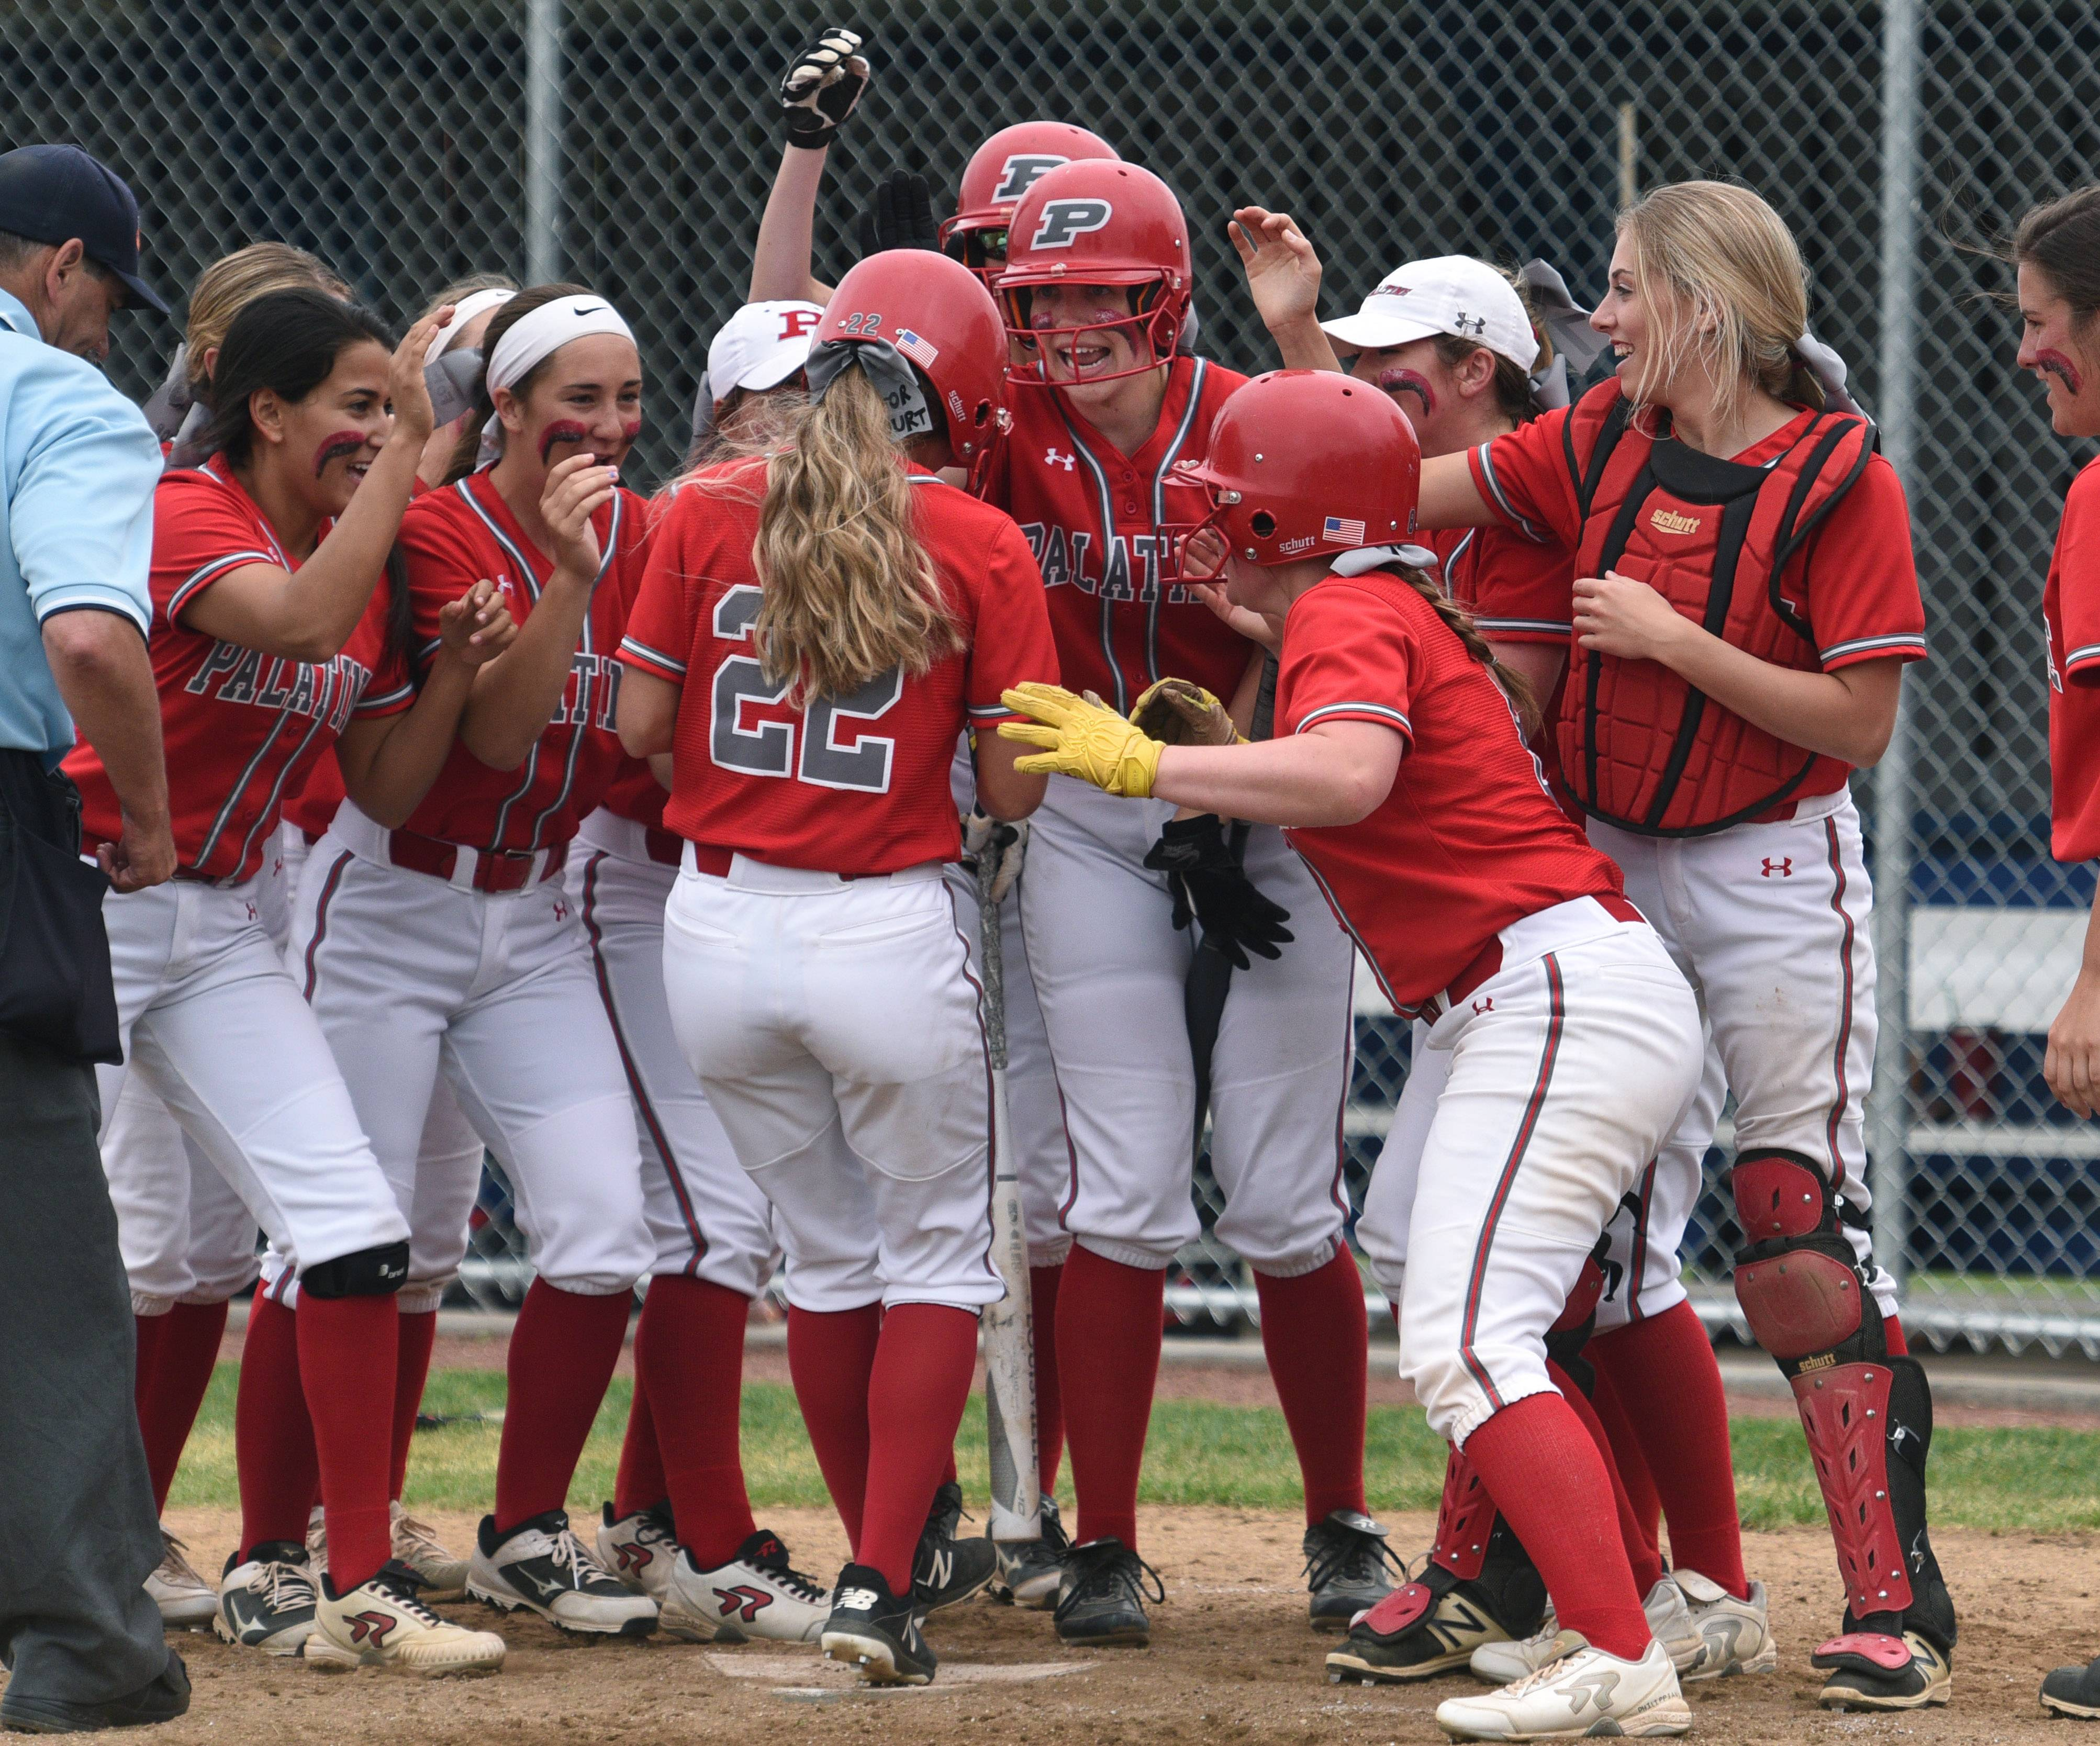 Palatine's Emily Parrott (22) is greeted at home following her third inning 2-run homer against Warren on Saturday in the Class 4A girls softball sectional championship game in Gurnee.